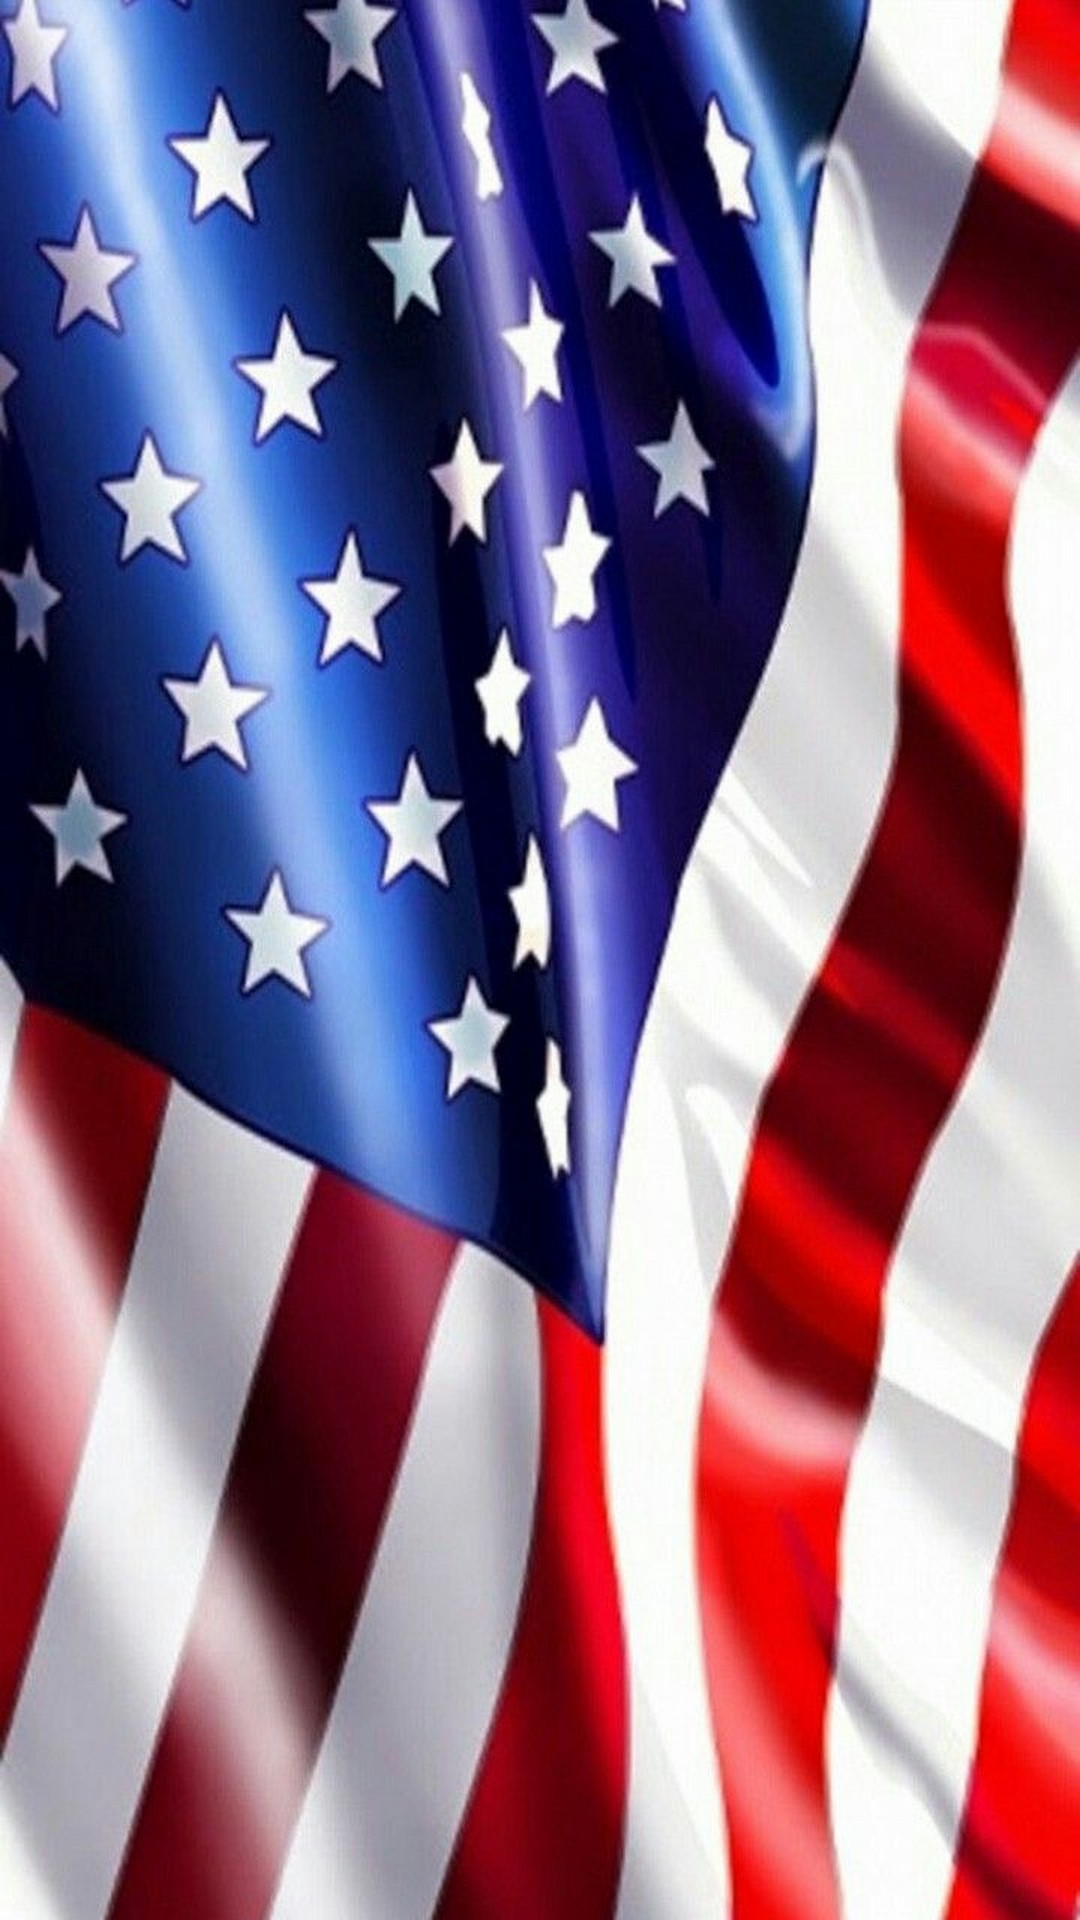 Start Download Usa Flag Wallpaper For Iphone 463314 Hd Wallpaper Backgrounds Download